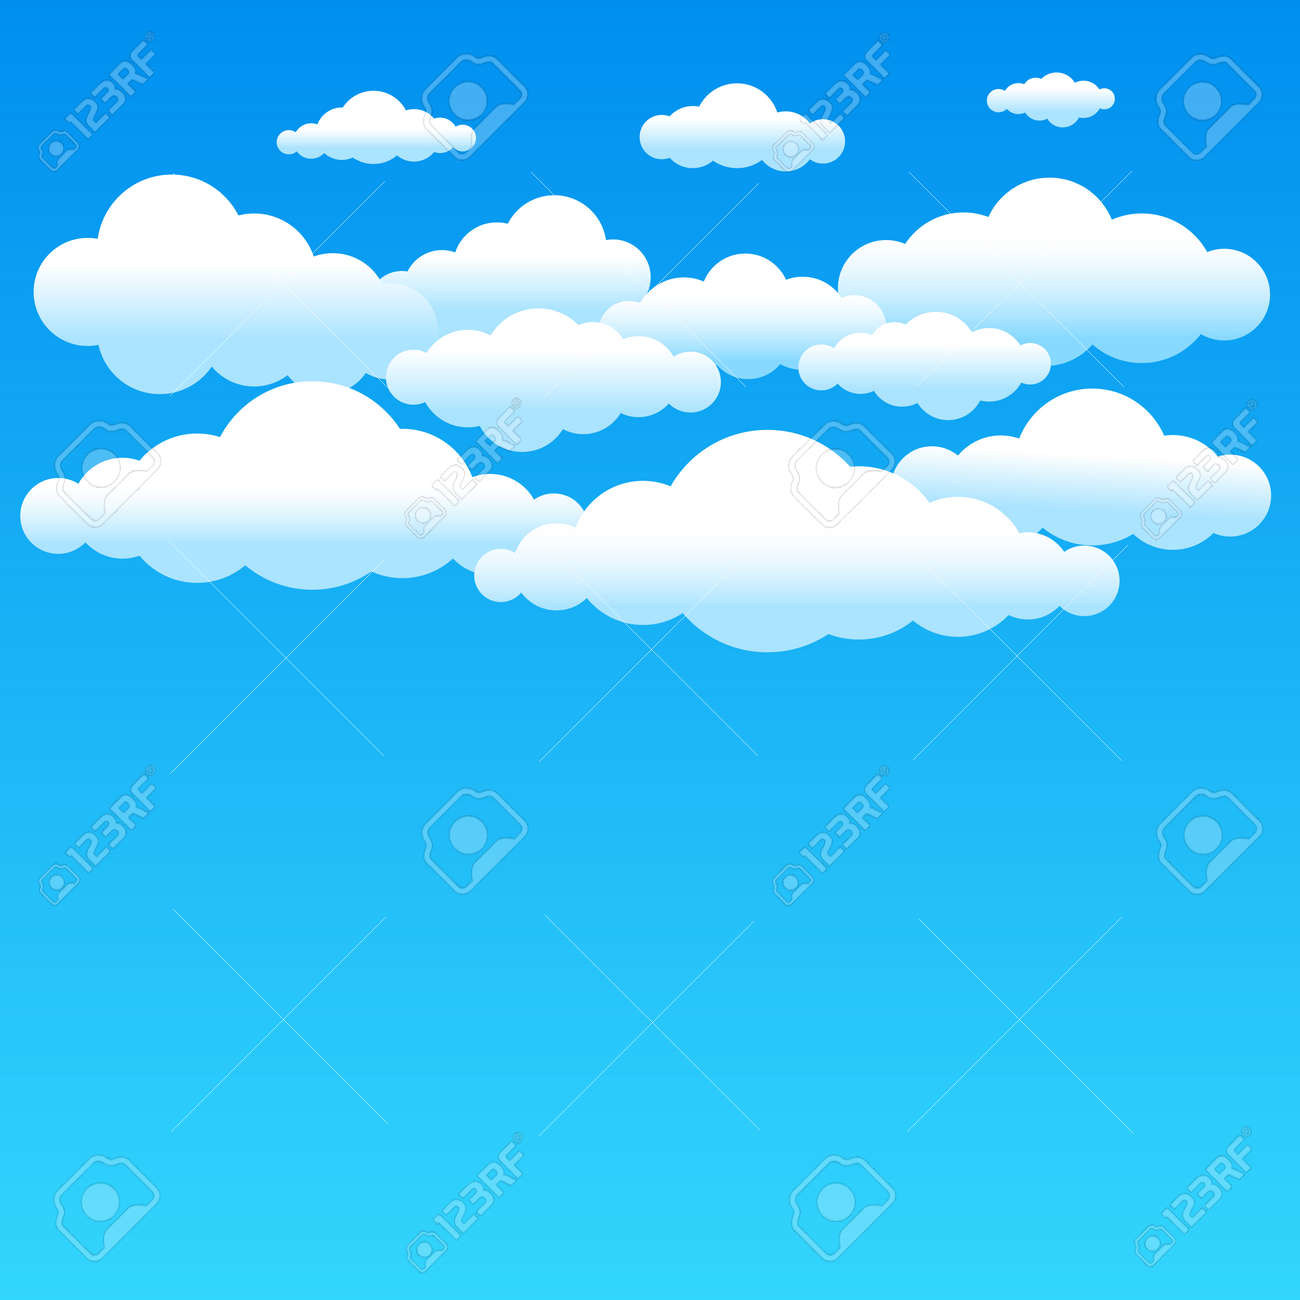 cartoon cloudy background on blue sky simple gradient clouds rh 123rf com cartoon sky background photoshop cartoon sky background photoshop